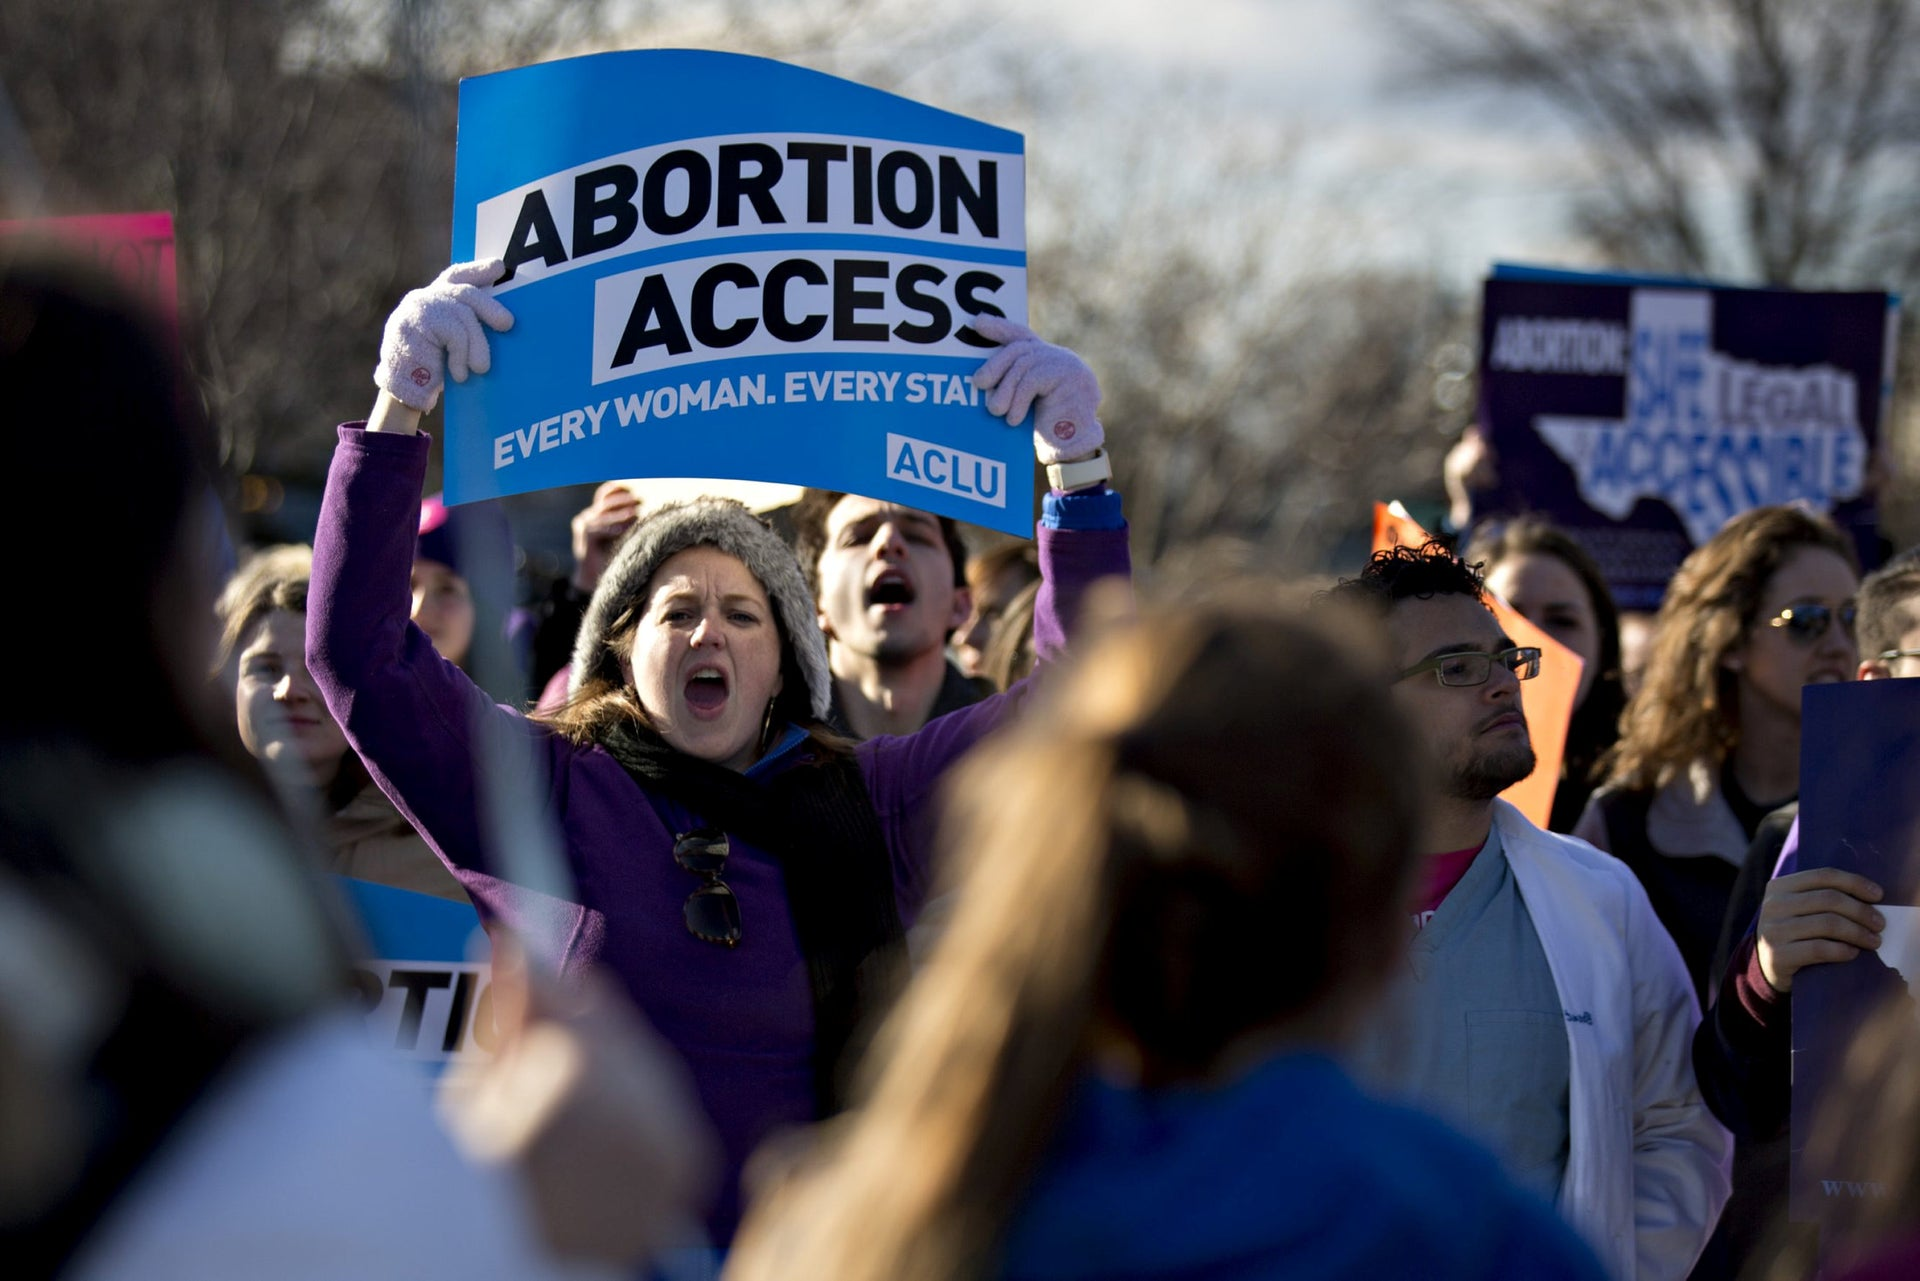 A demonstrators holding up a sign in support of pro-choice rights outside the U.S. Supreme Court in Washington, March 2, 2016.